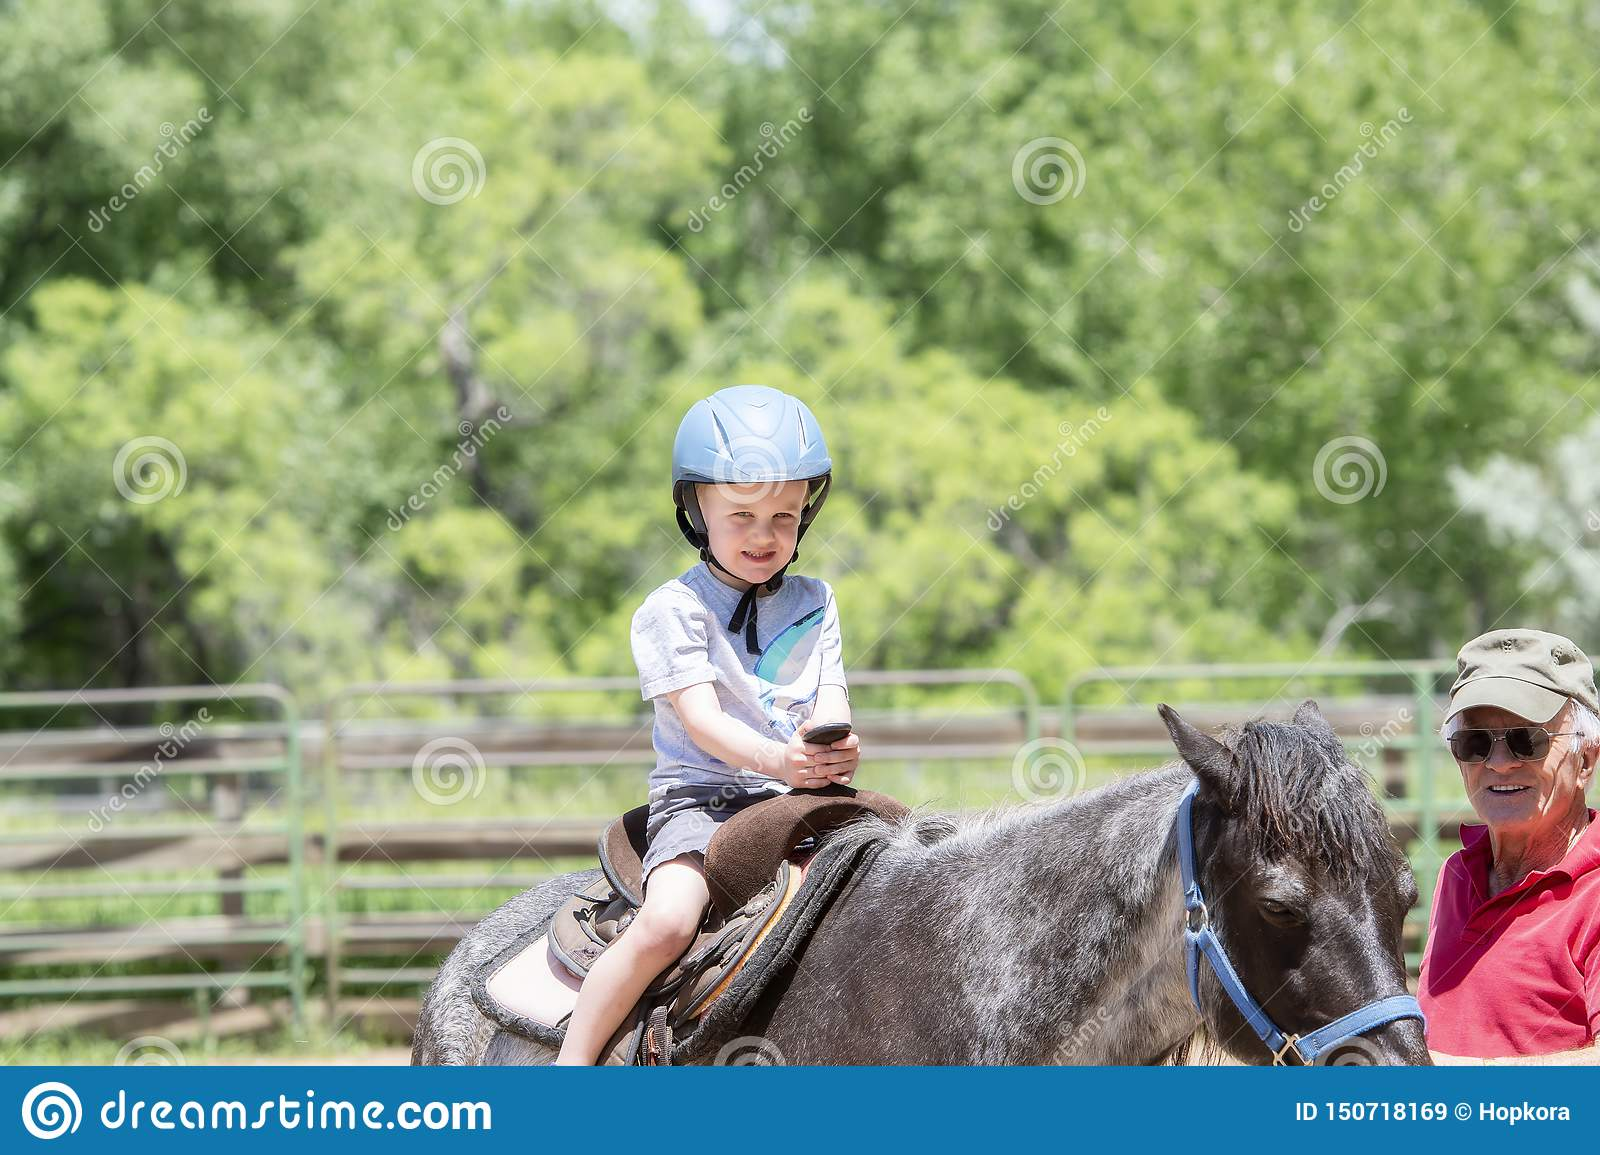 Toddler with a Safety Helmet on Goes on a Pony Ride at a Local Farm with his Horse Being Led Grandfather